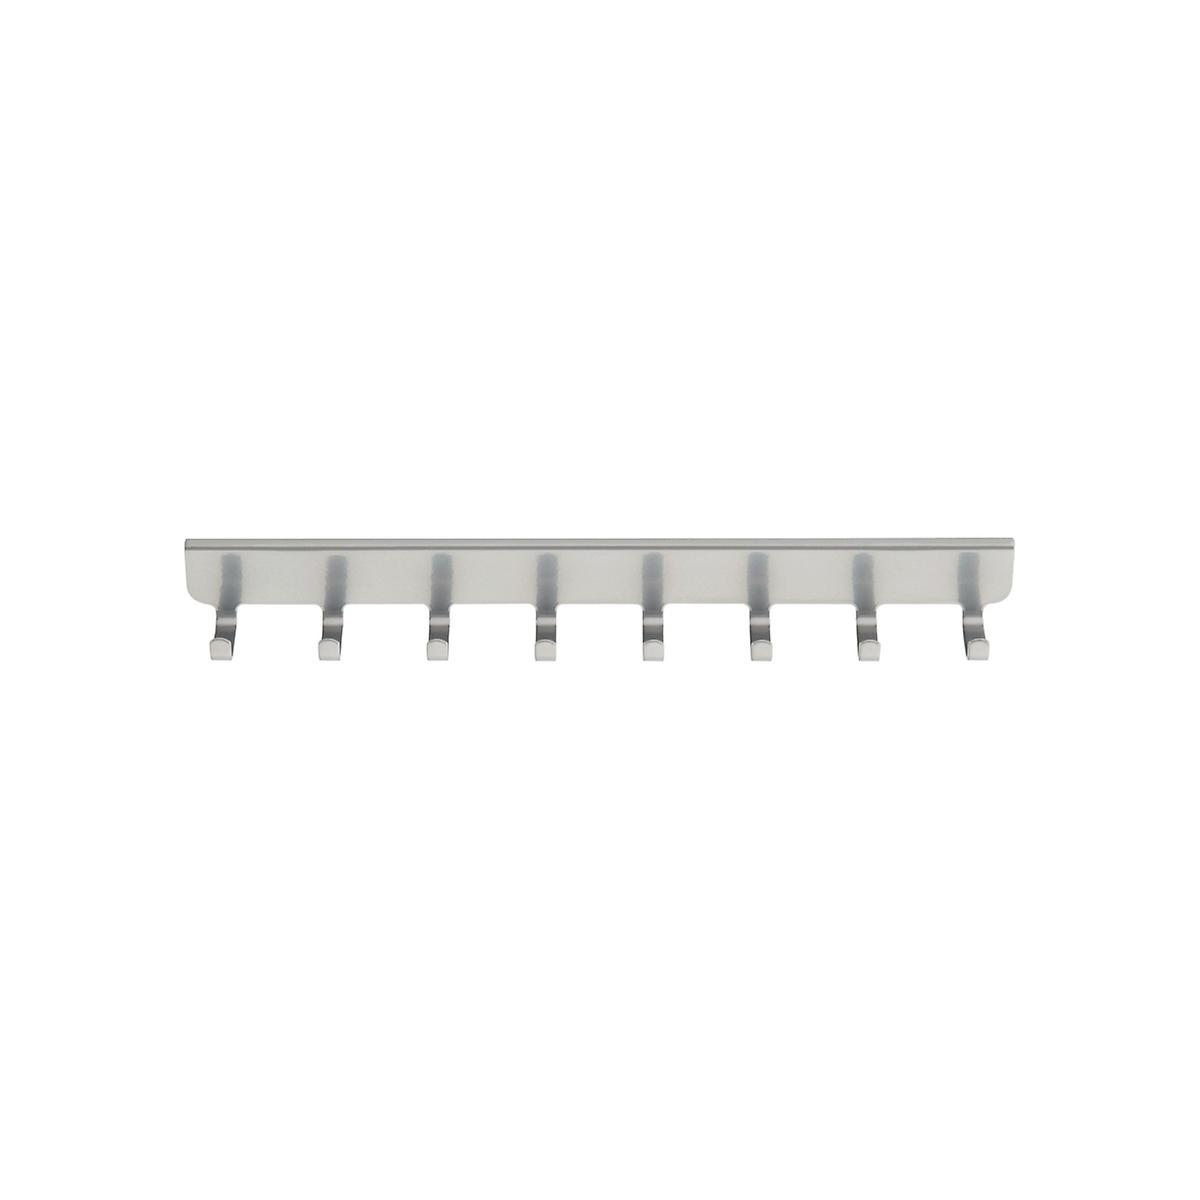 Platinum Elfa Ventilated Wire Shelf Bracket Hooks The Container Store How To A Switch Panel